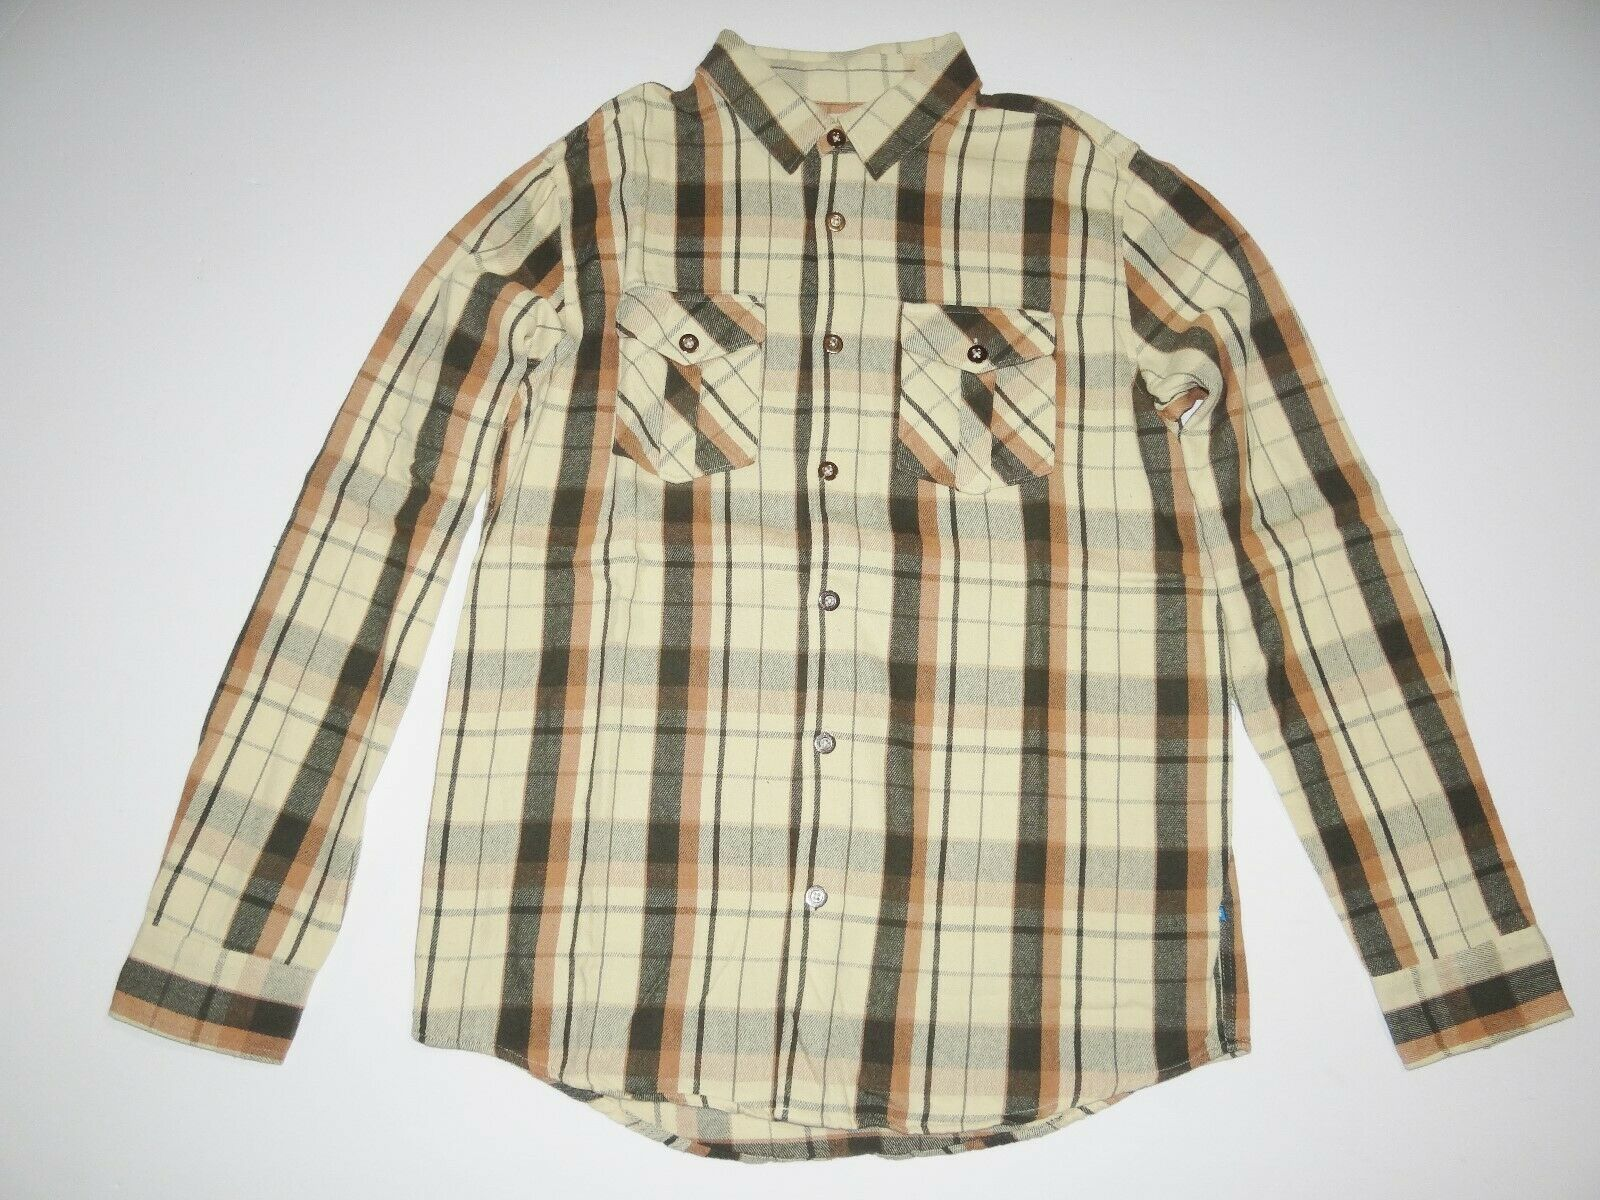 d11d14801c1 New DC shoes Mens Barn Burner Long Sleeve Casual Button Up Flannel Shirt